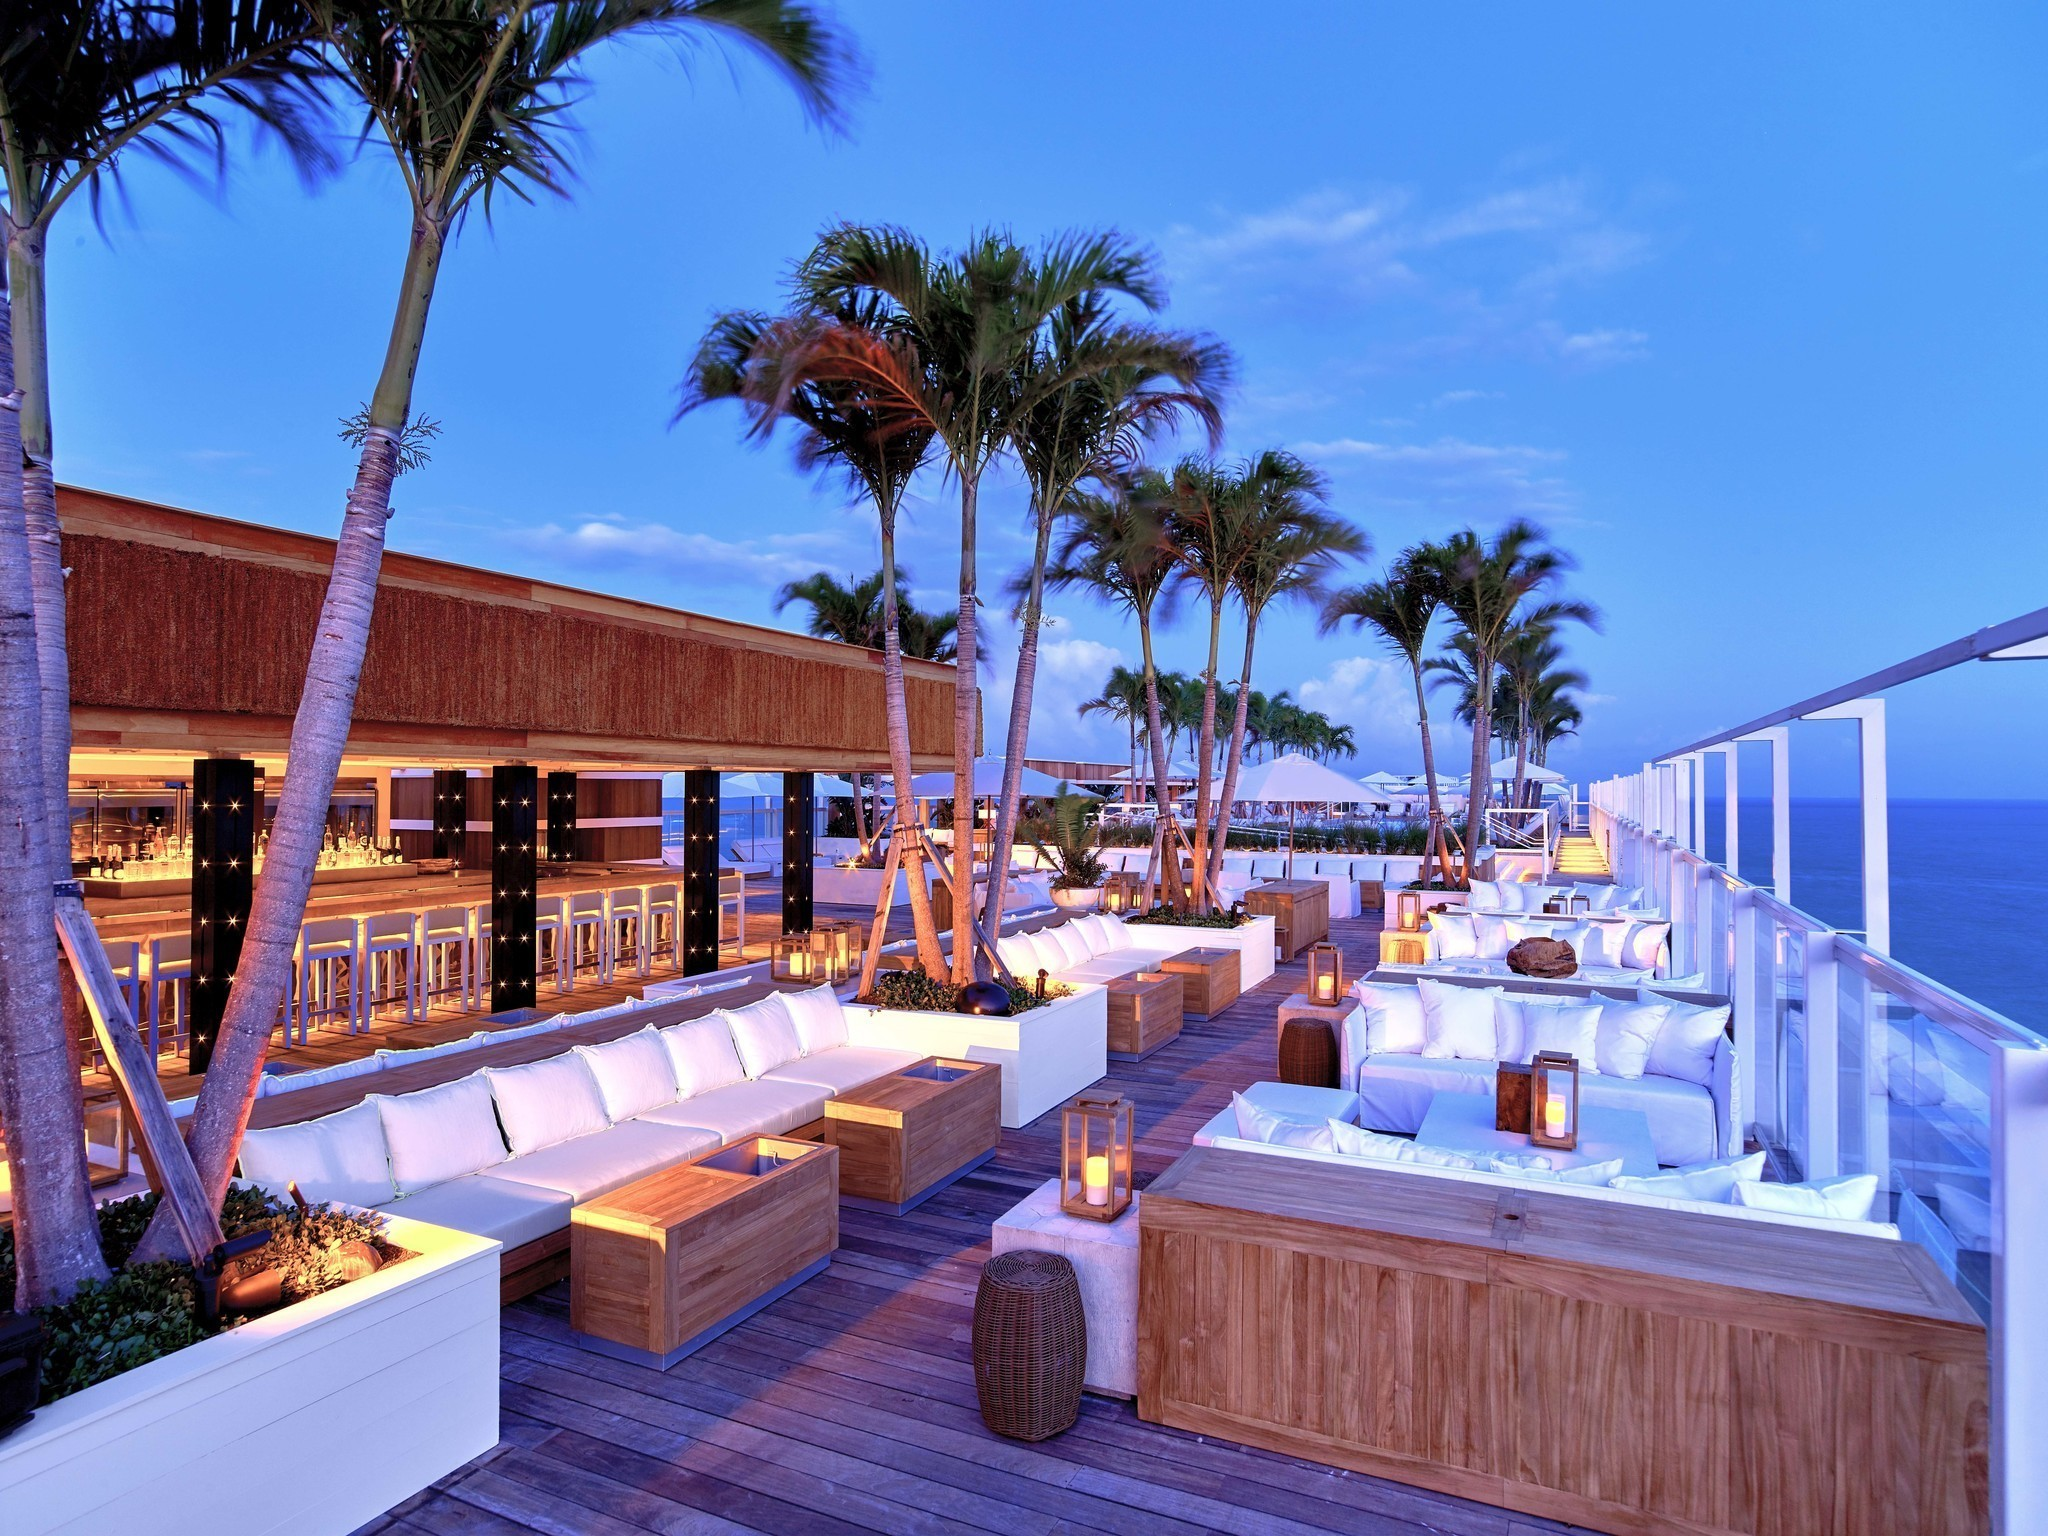 sf-rooftop-bars-miami-fort-lauderdale-photos-20171103.jpg